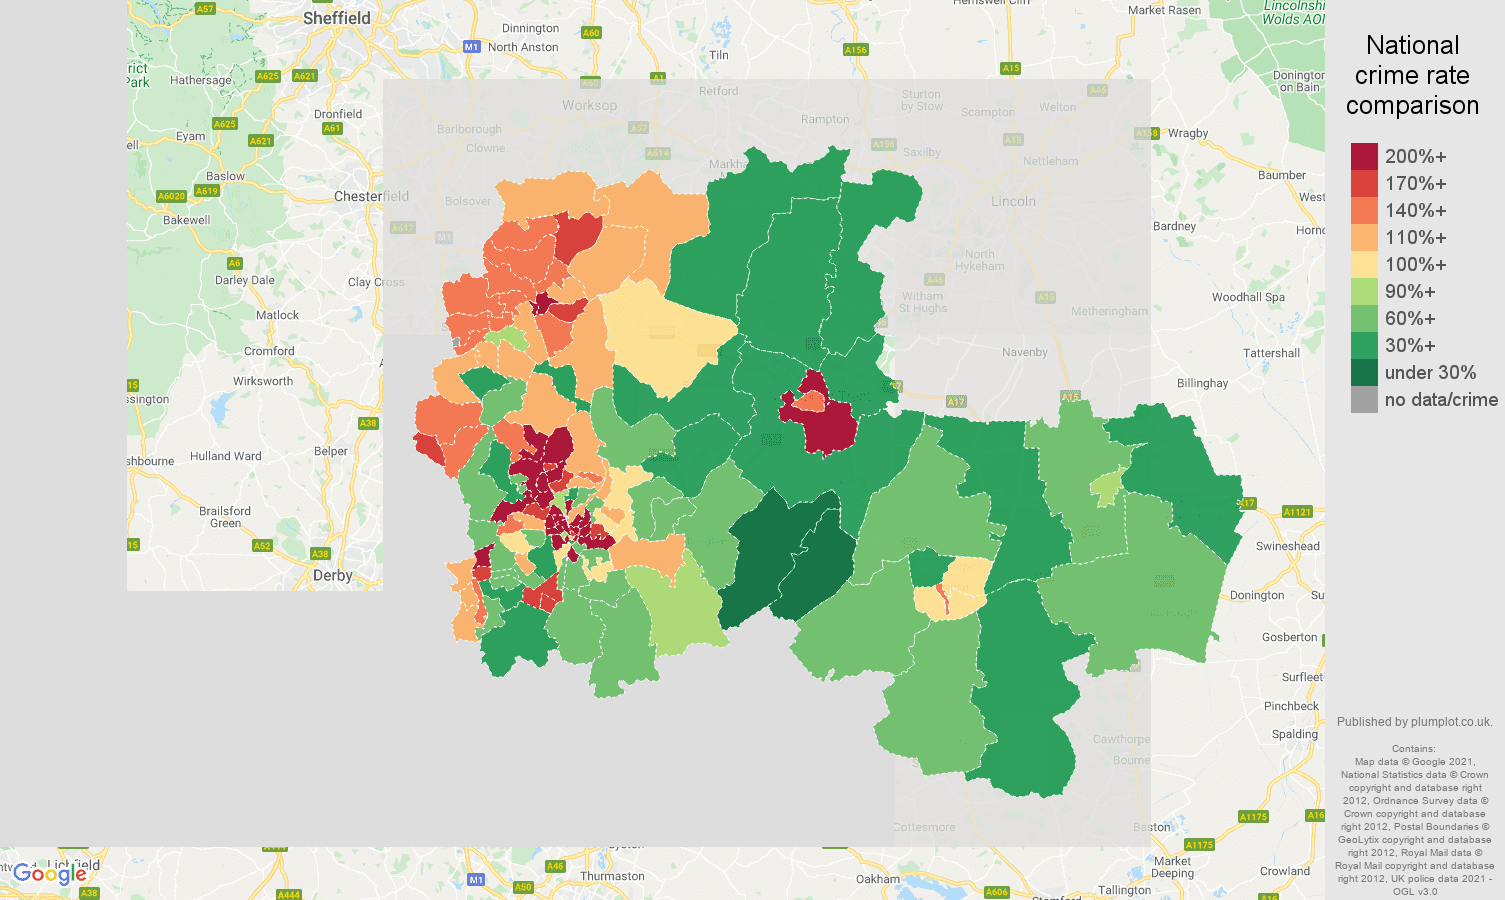 Nottingham antisocial behaviour crime rate comparison map